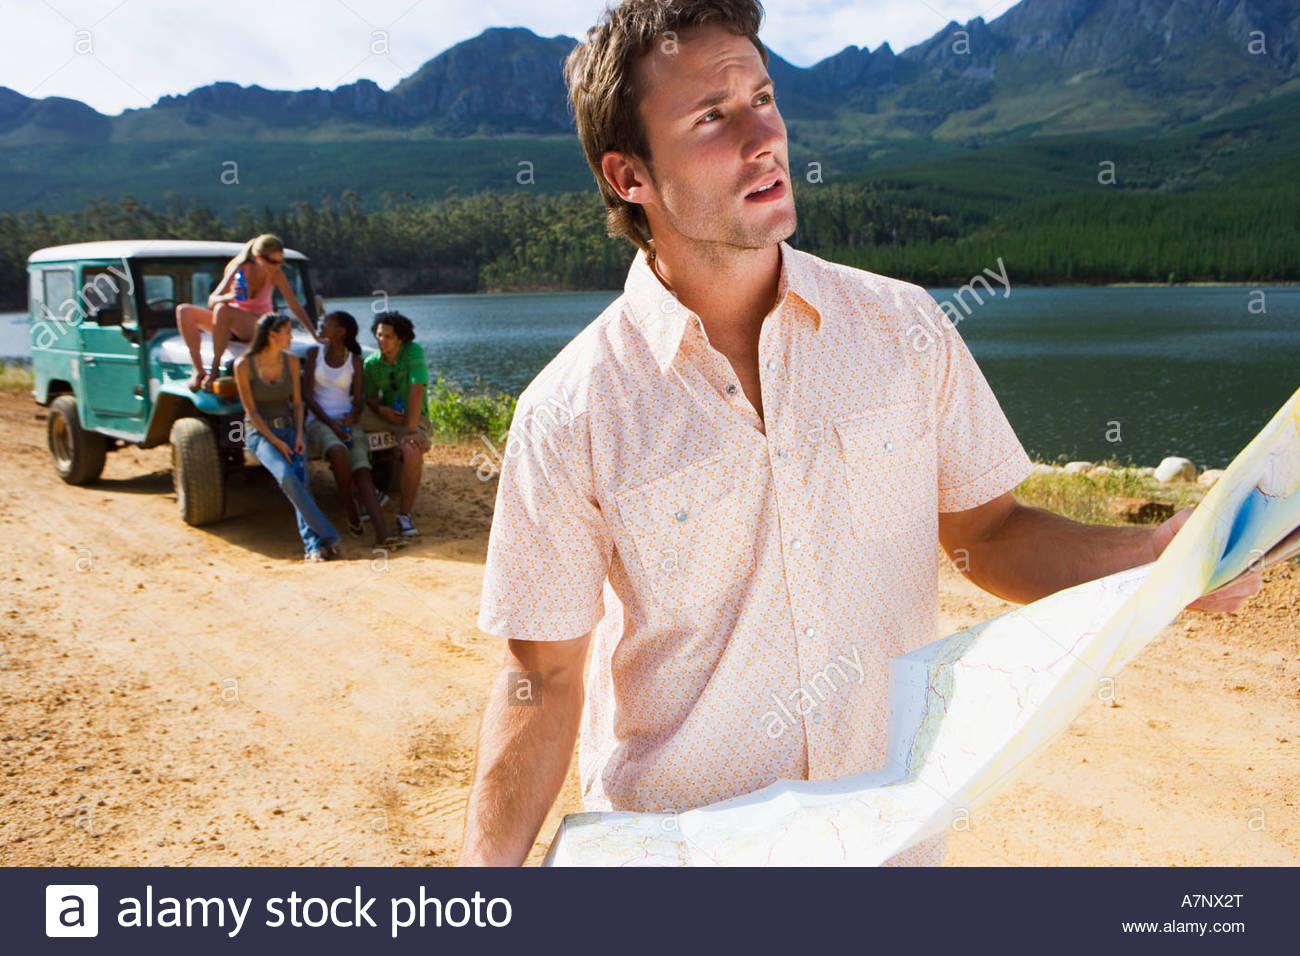 Four young adults waiting by parked jeep on dirt track beside lake focus on man consulting map in foreground - Stock Image